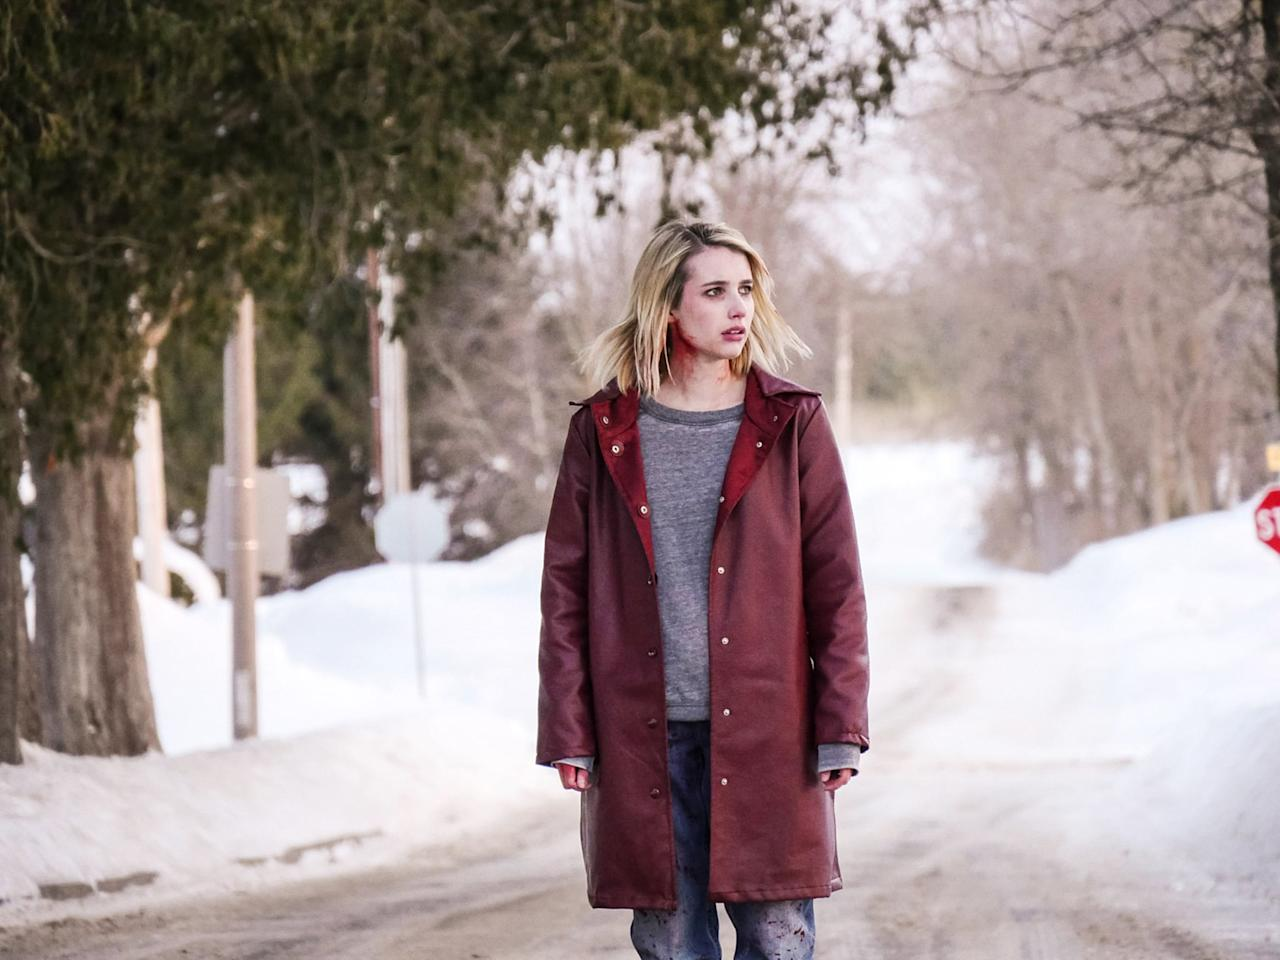 """<p>In this horror flick, Emma Roberts plays Joan, a troubled young woman en route to an isolated Catholic boarding school in the dead of Winter, where two students whose parents never picked them up for Winter break (played by Kiernan Shipka and Lucy Boynton) are up against a sinister yet unseen threat. Though it's unclear why Joan is so determined to get to Bramford, it <em>is</em> clear that the force becomes more powerful the closer she gets to the school. </p> <p><a href=""""http://www.netflix.com/title/80080768"""" target=""""_blank"""" class=""""ga-track ga-track"""" data-ga-category=""""Related"""" data-ga-label=""""http://www.netflix.com/title/80080768"""" data-ga-action=""""In-Line Links"""">Watch <strong>The Blackcoat's Daughter</strong> on Netflix</a>.<br></p>"""